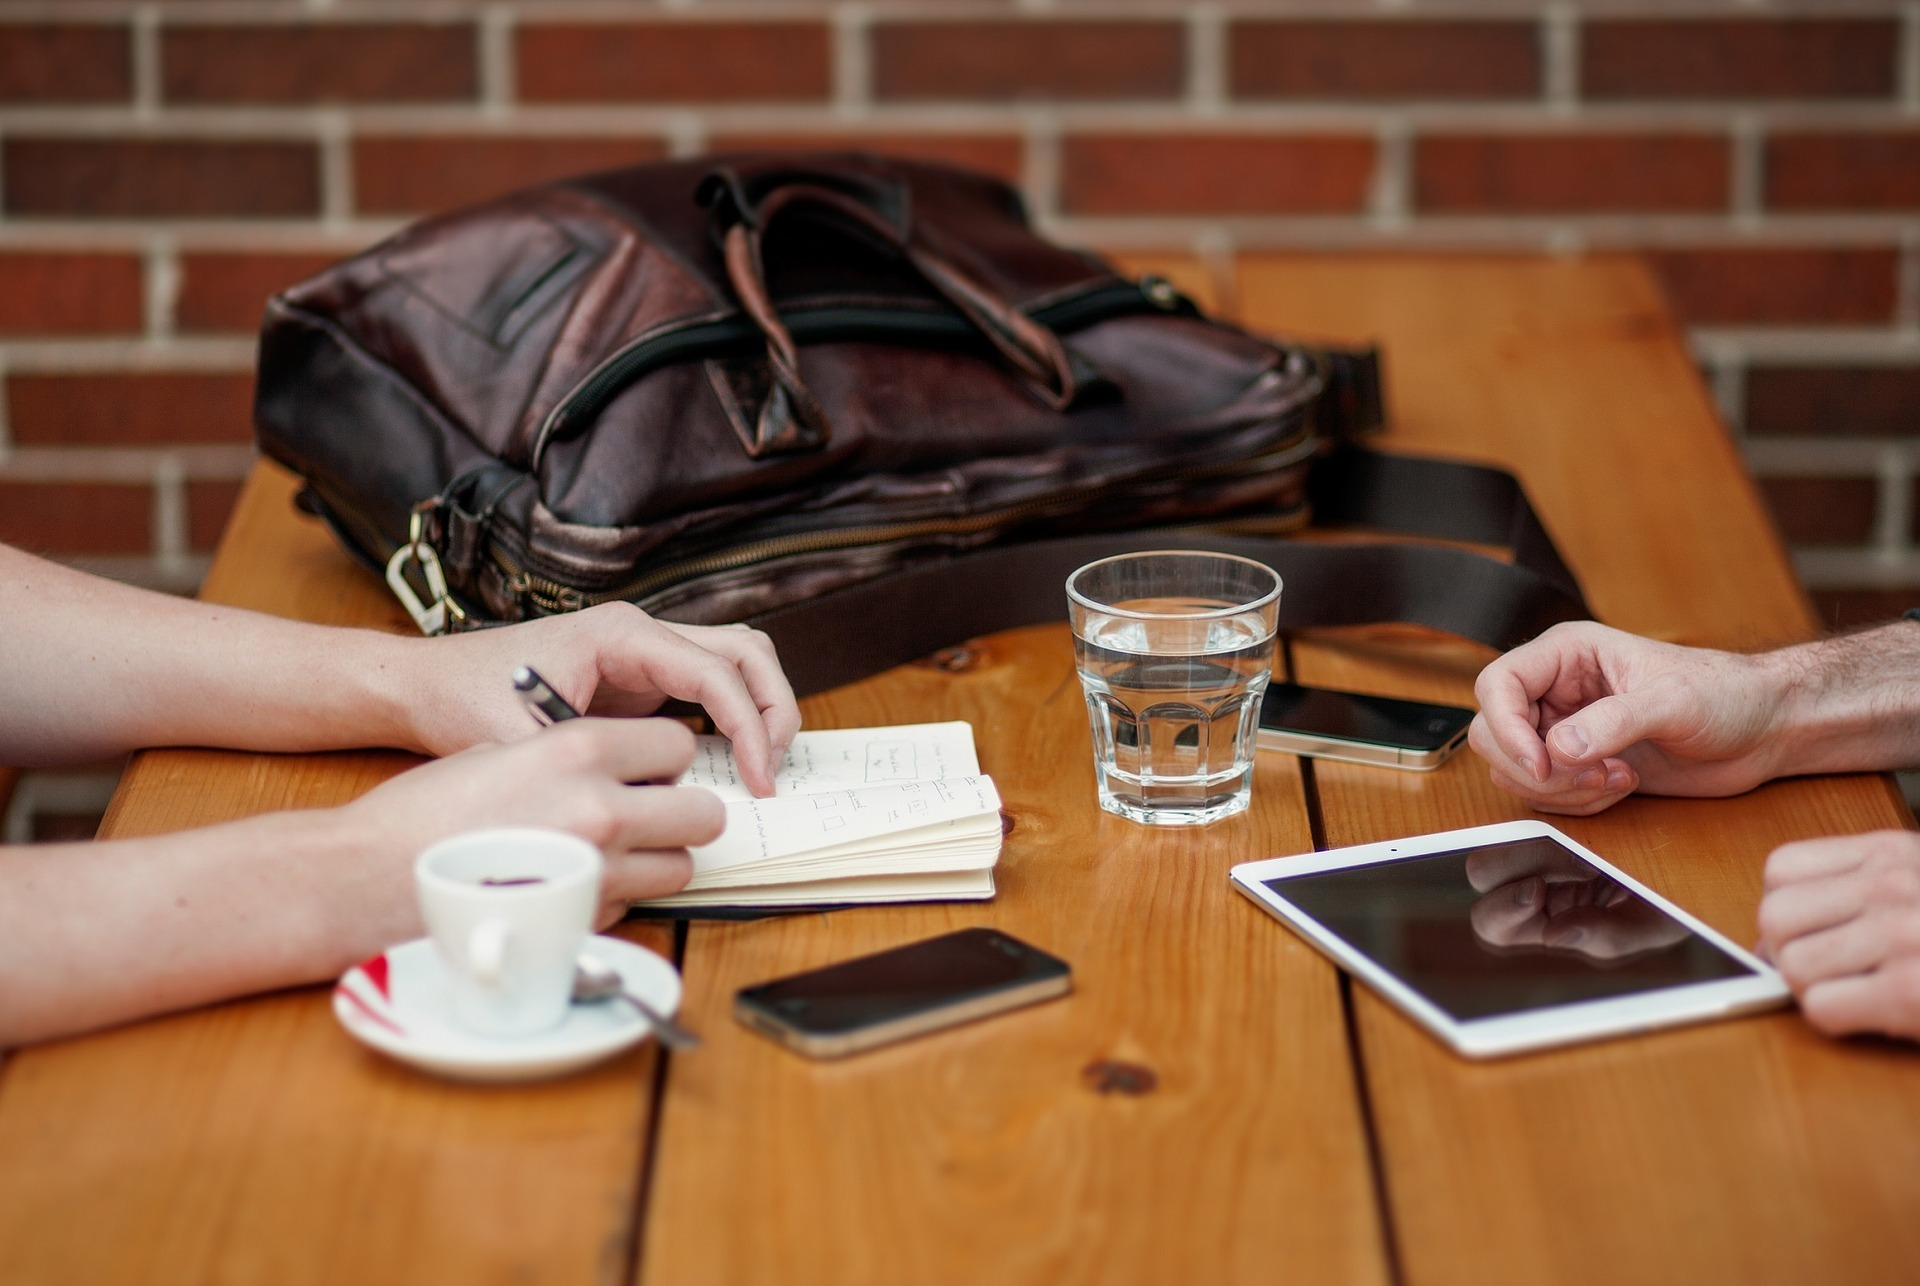 Close up image of a business meeting with coffee, notes and iPads